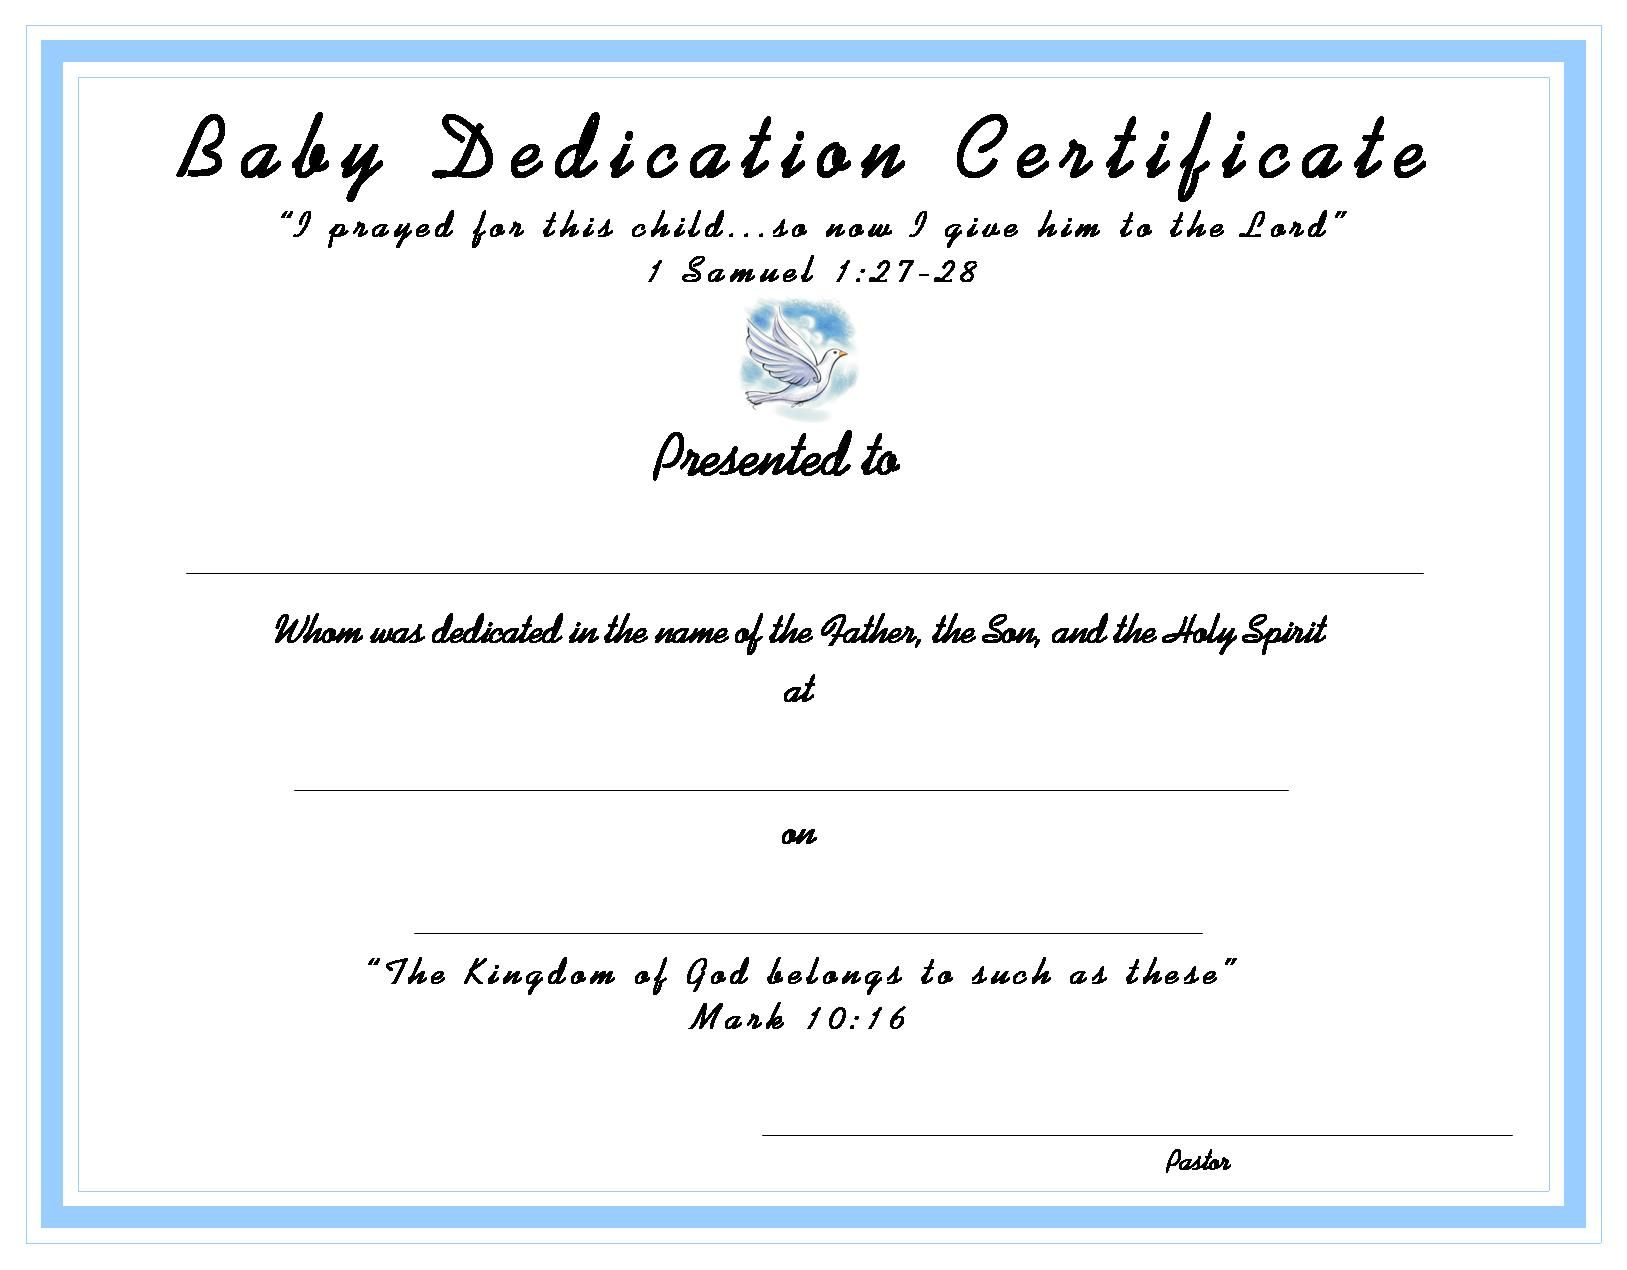 Certificatetemplate baby dedication certificate for your certificate template for kids free printable certificate templates for church baptism certificate templates baby dedication certificate templates yadclub Gallery